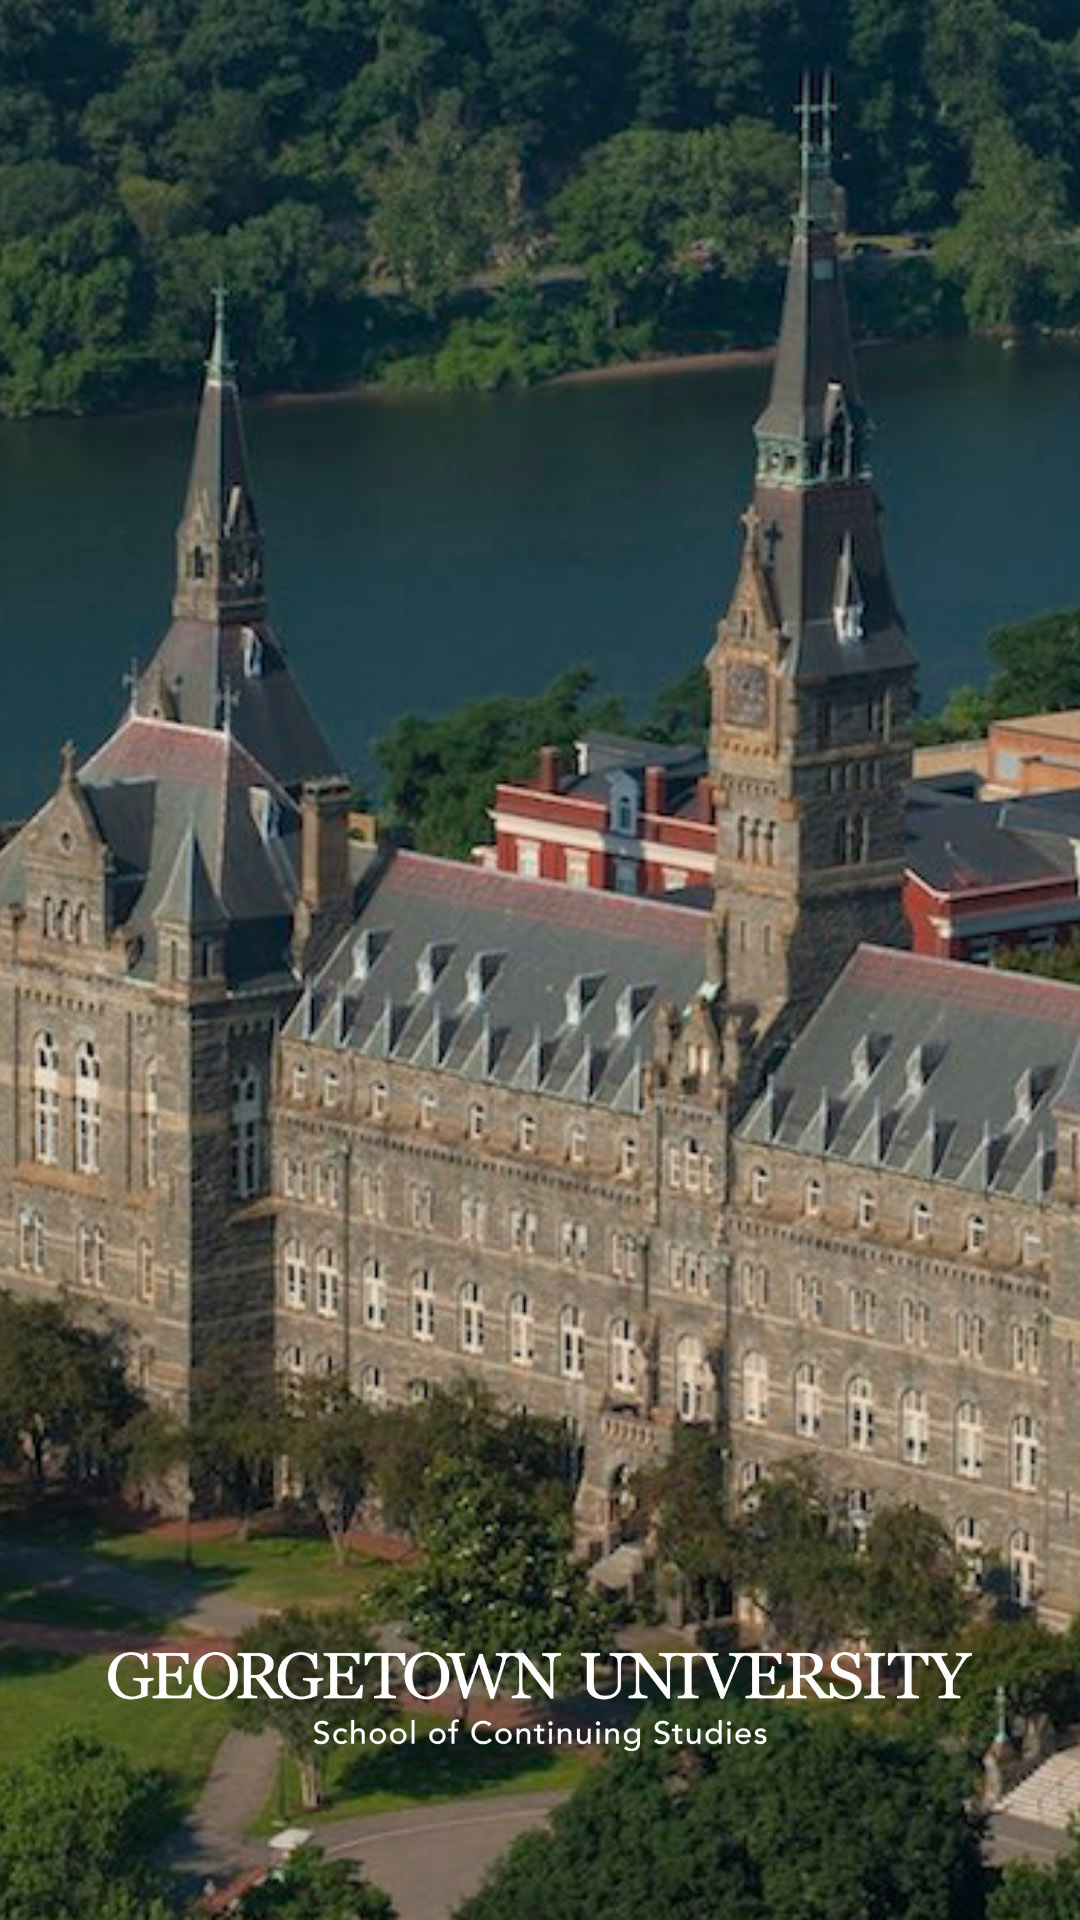 Healy Hall with Potomac River